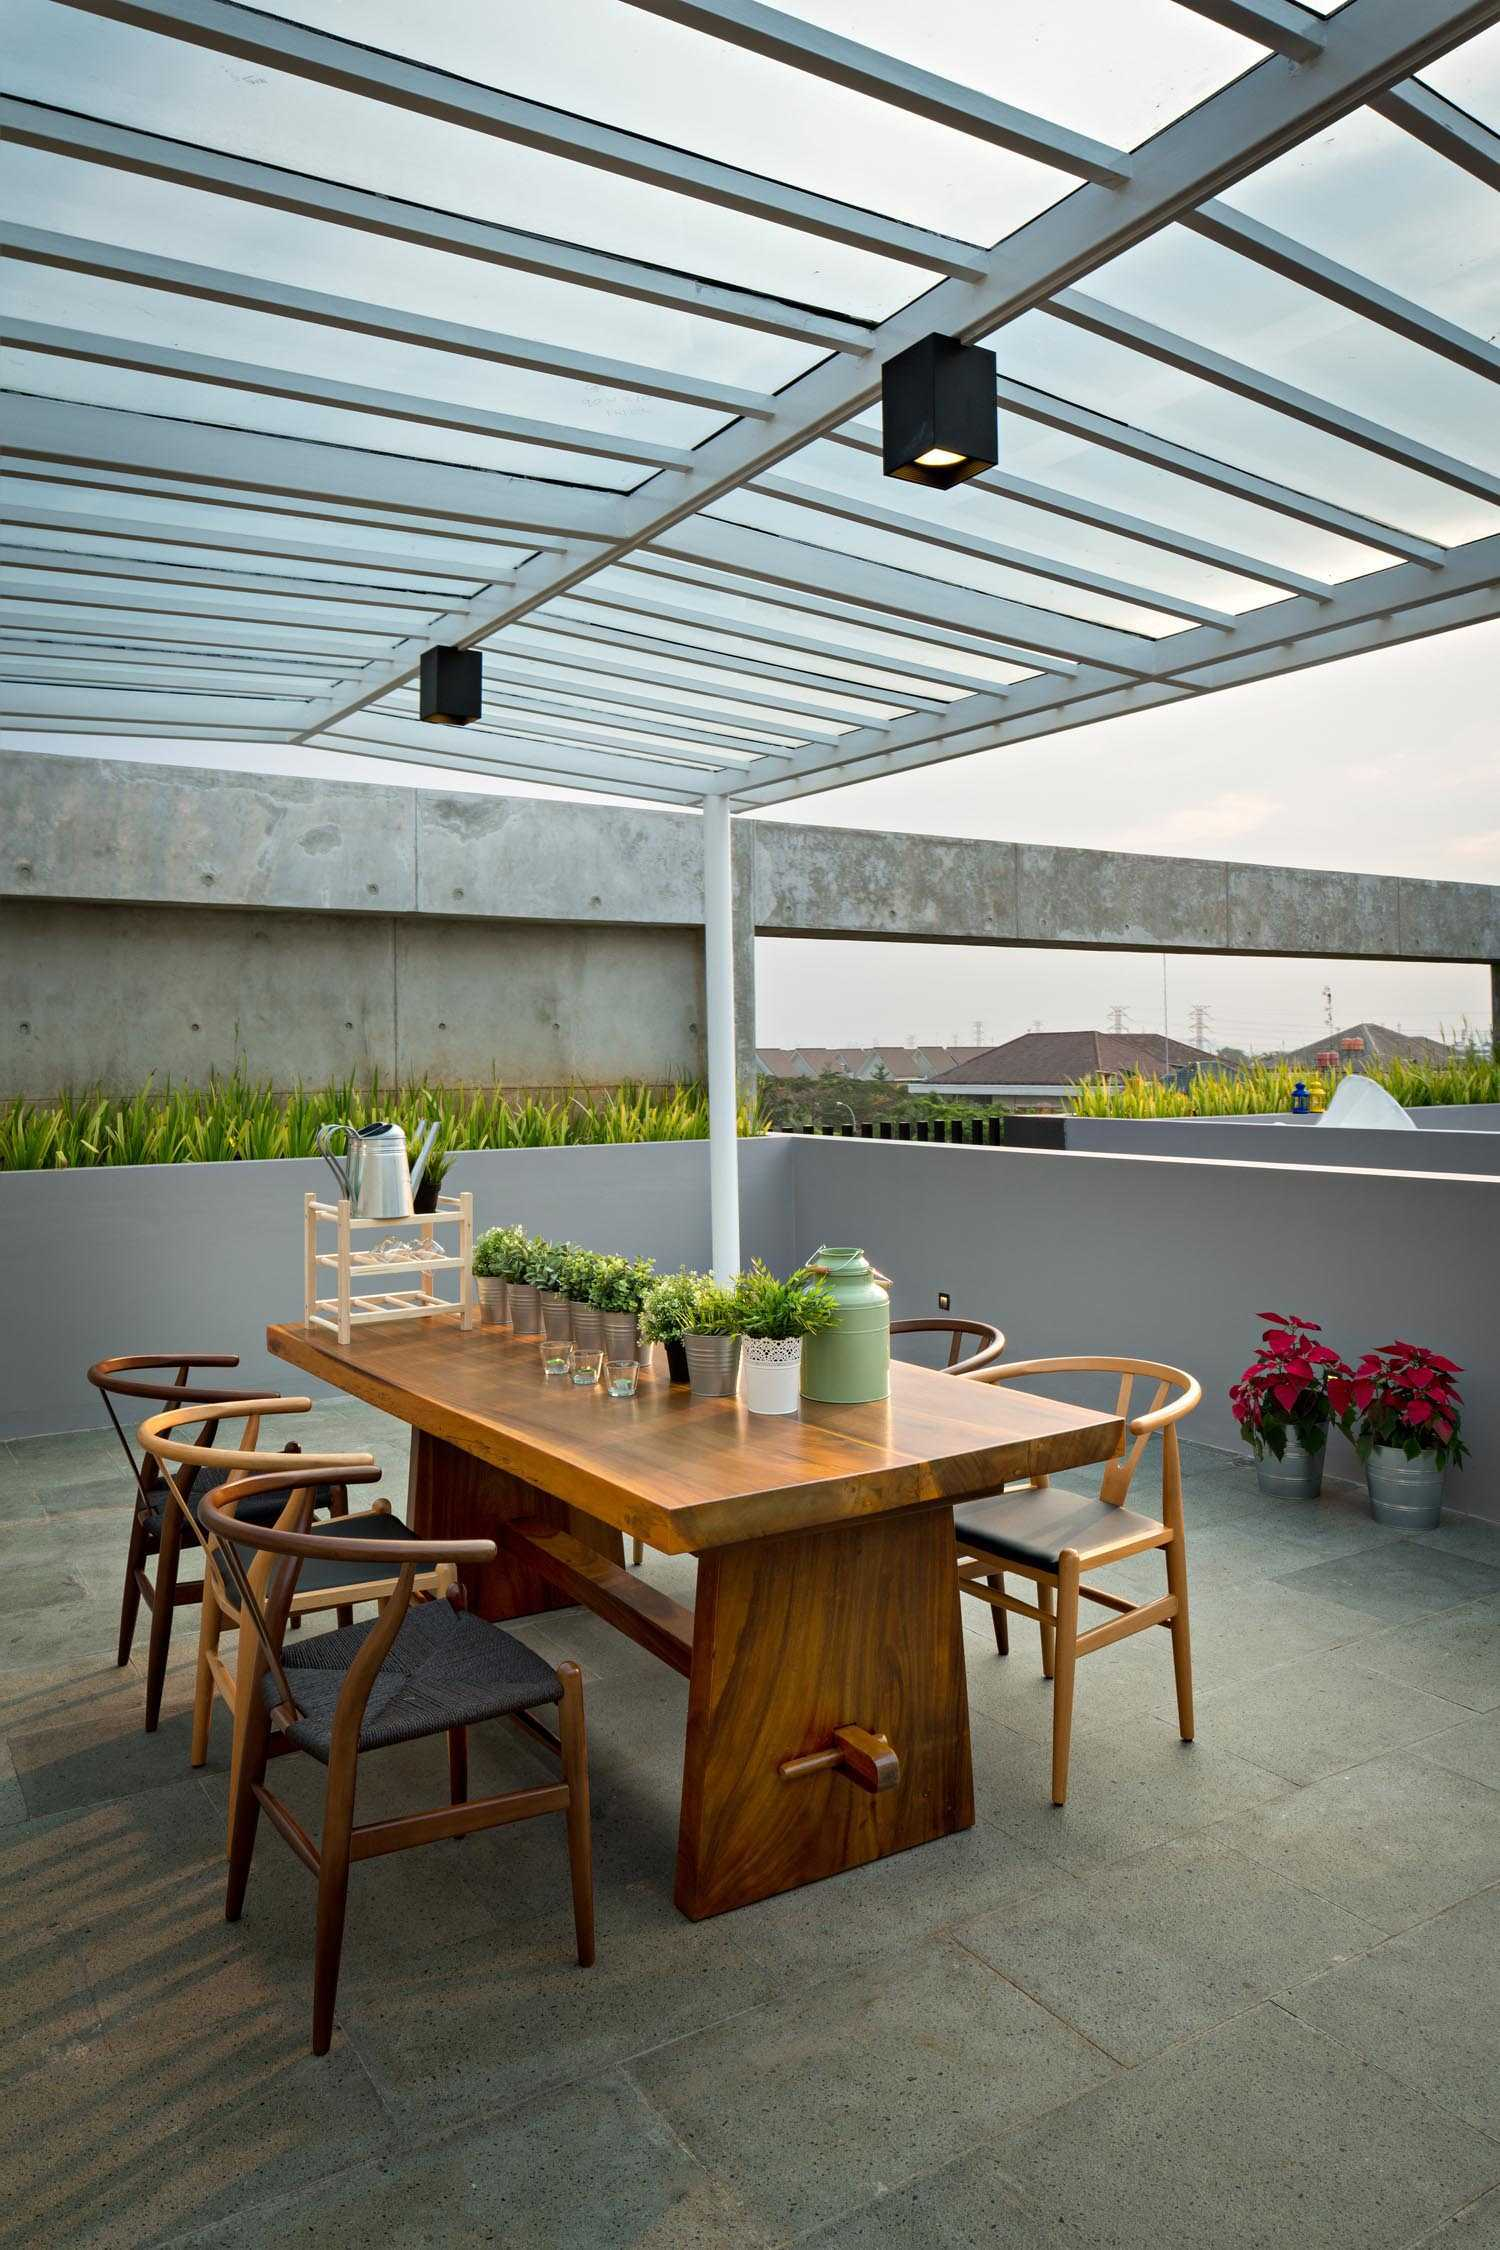 Dp+Hs Architects S+I House Jakarta, Indonesia Jakarta, Indonesia Dining Area Outdoor Kontemporer,industrial,modern  12038